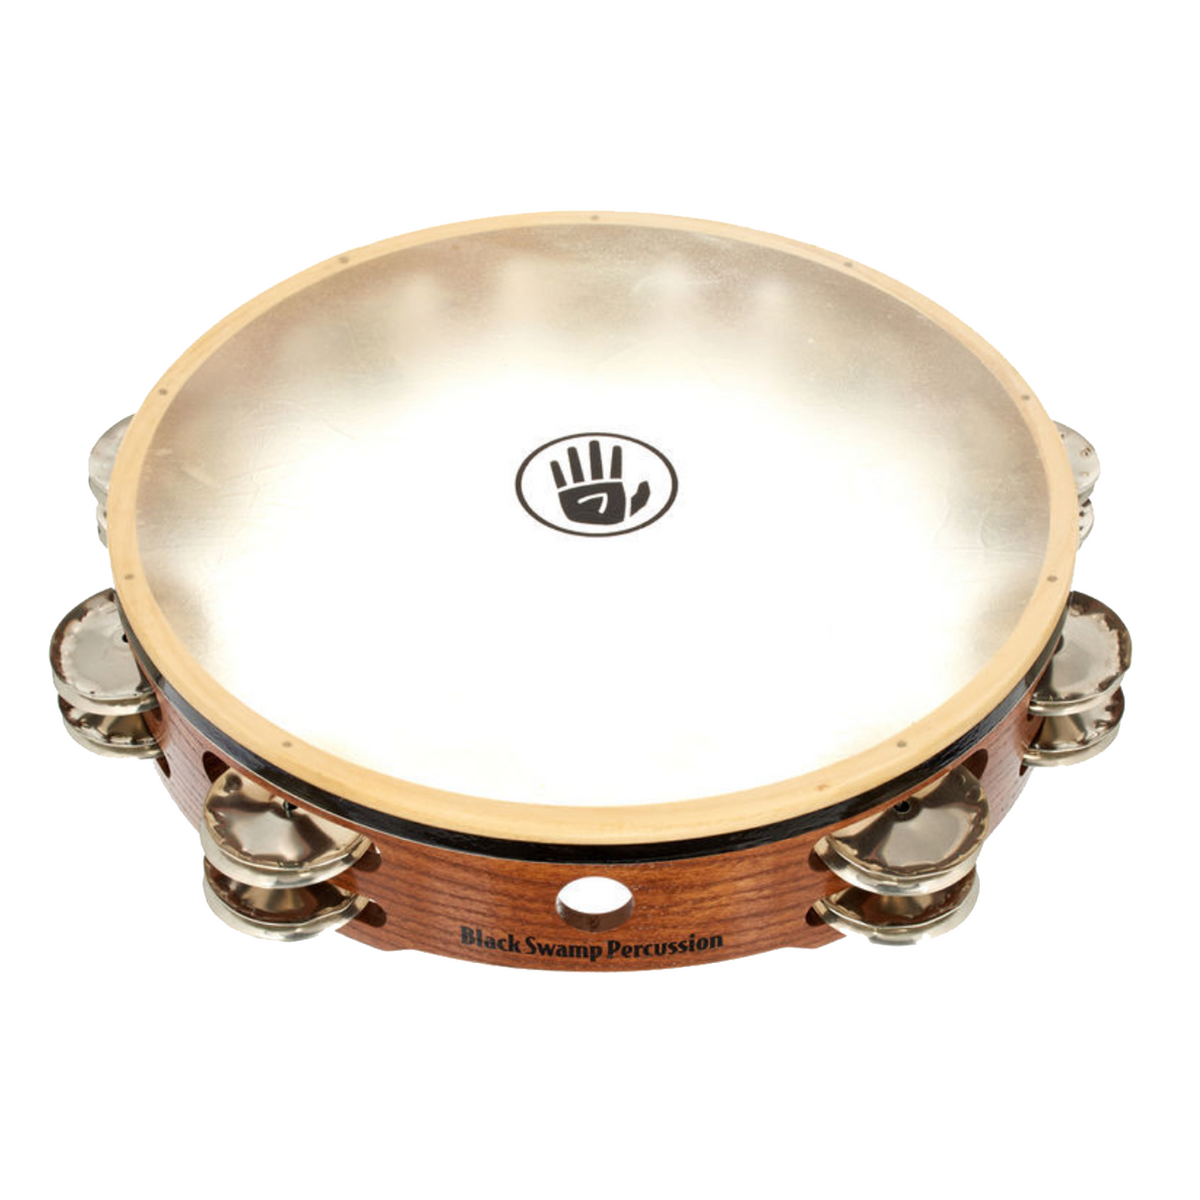 Black Swamp - Double Row Calf Head Tambourines-Percussion Accessories-Black Swamp-German Silver-Music Elements